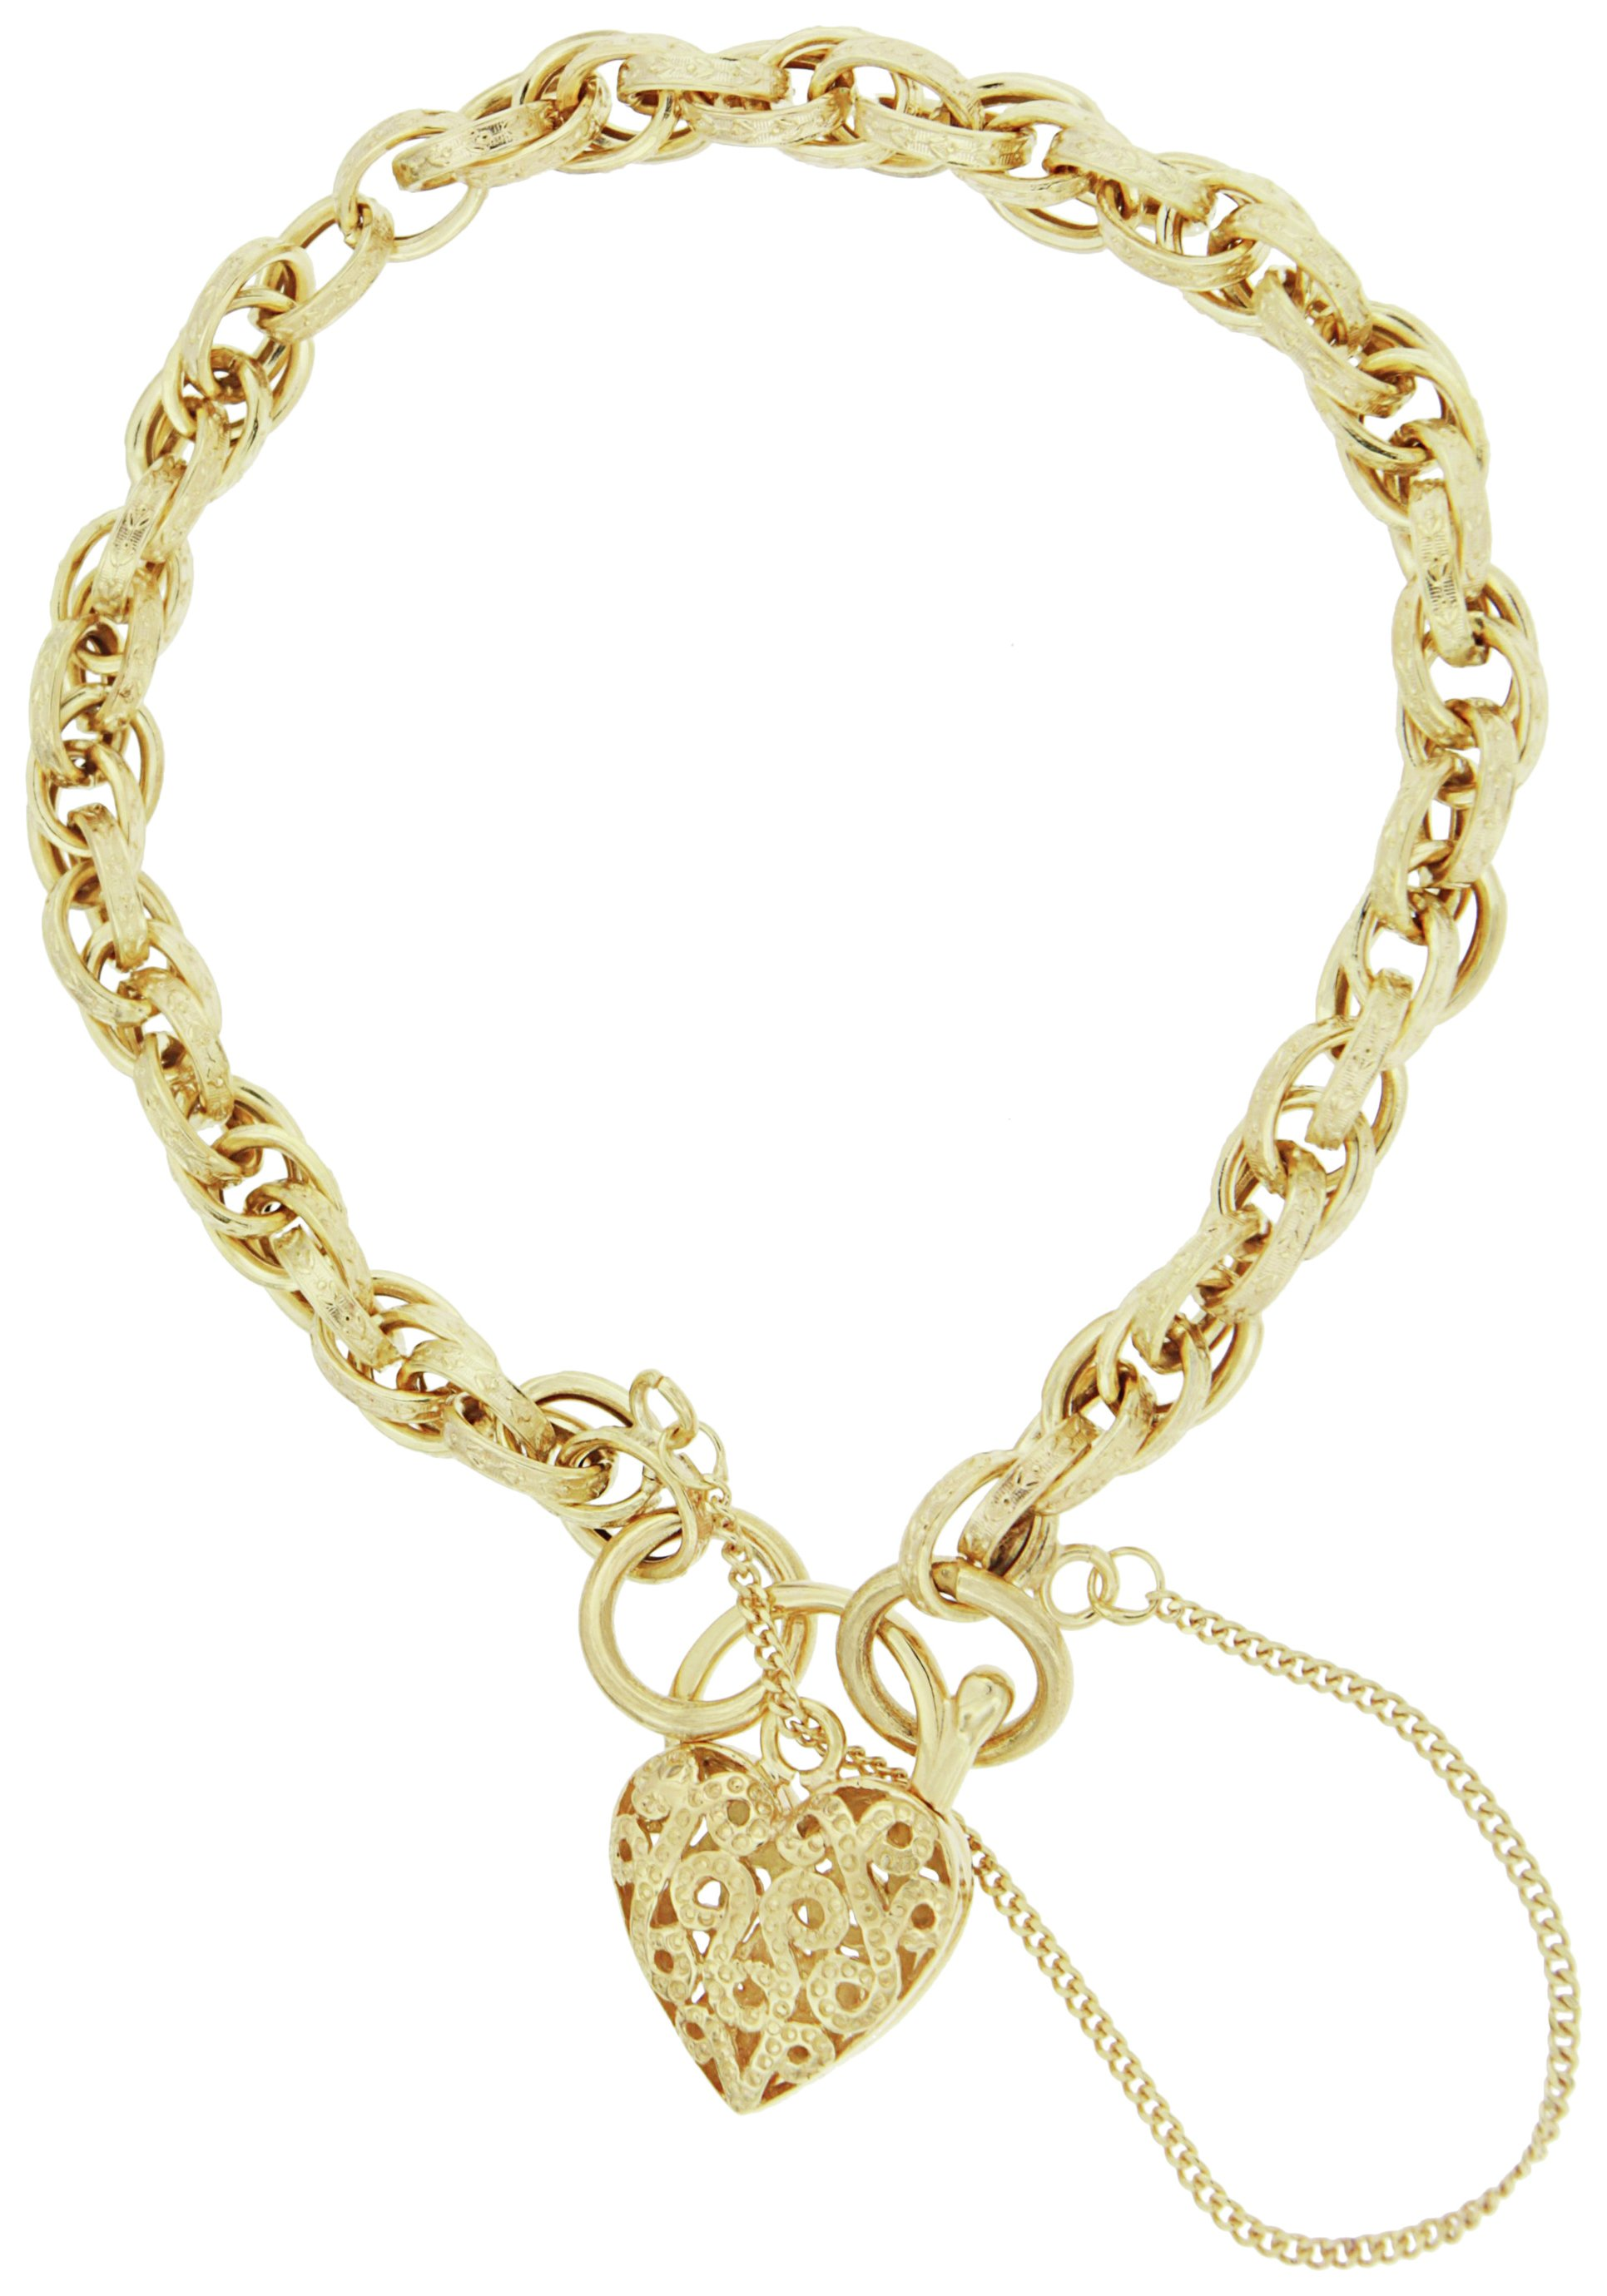 Image of Bracci - 9 Carat Gold - Textured Link Heart Bracelet.